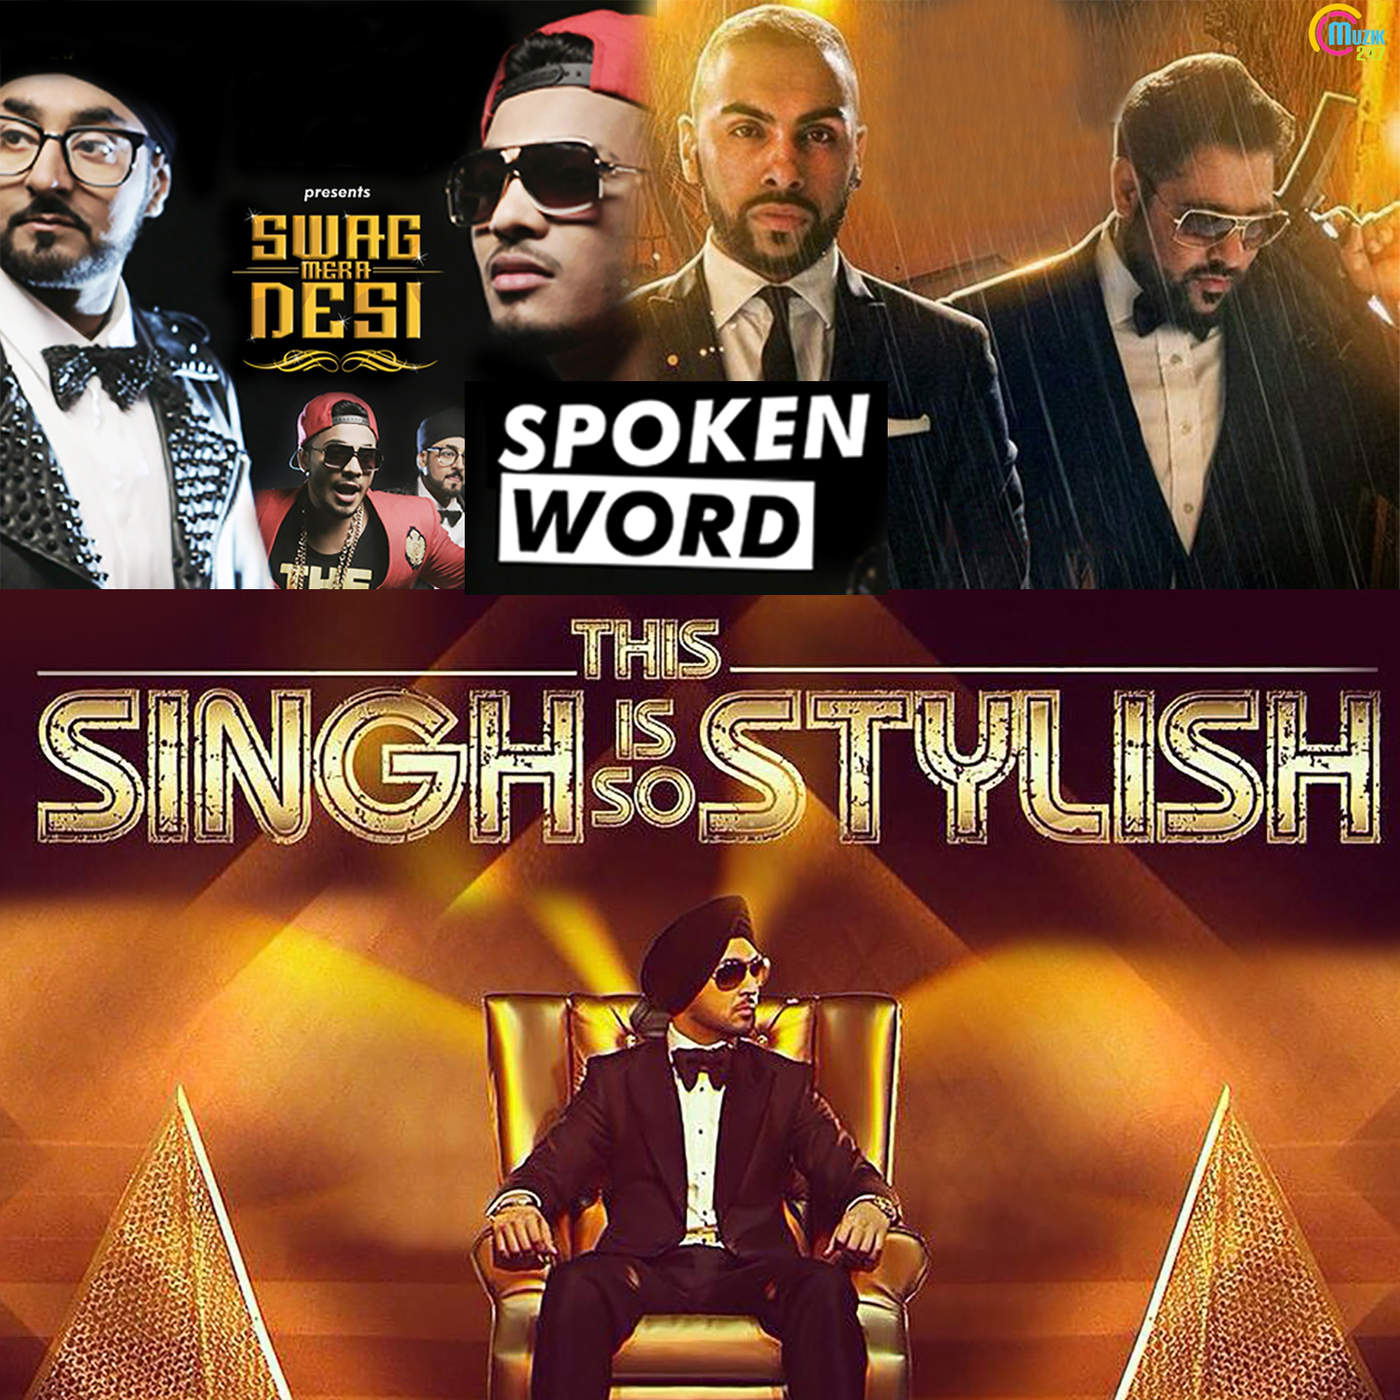 This singh is so stylish remix